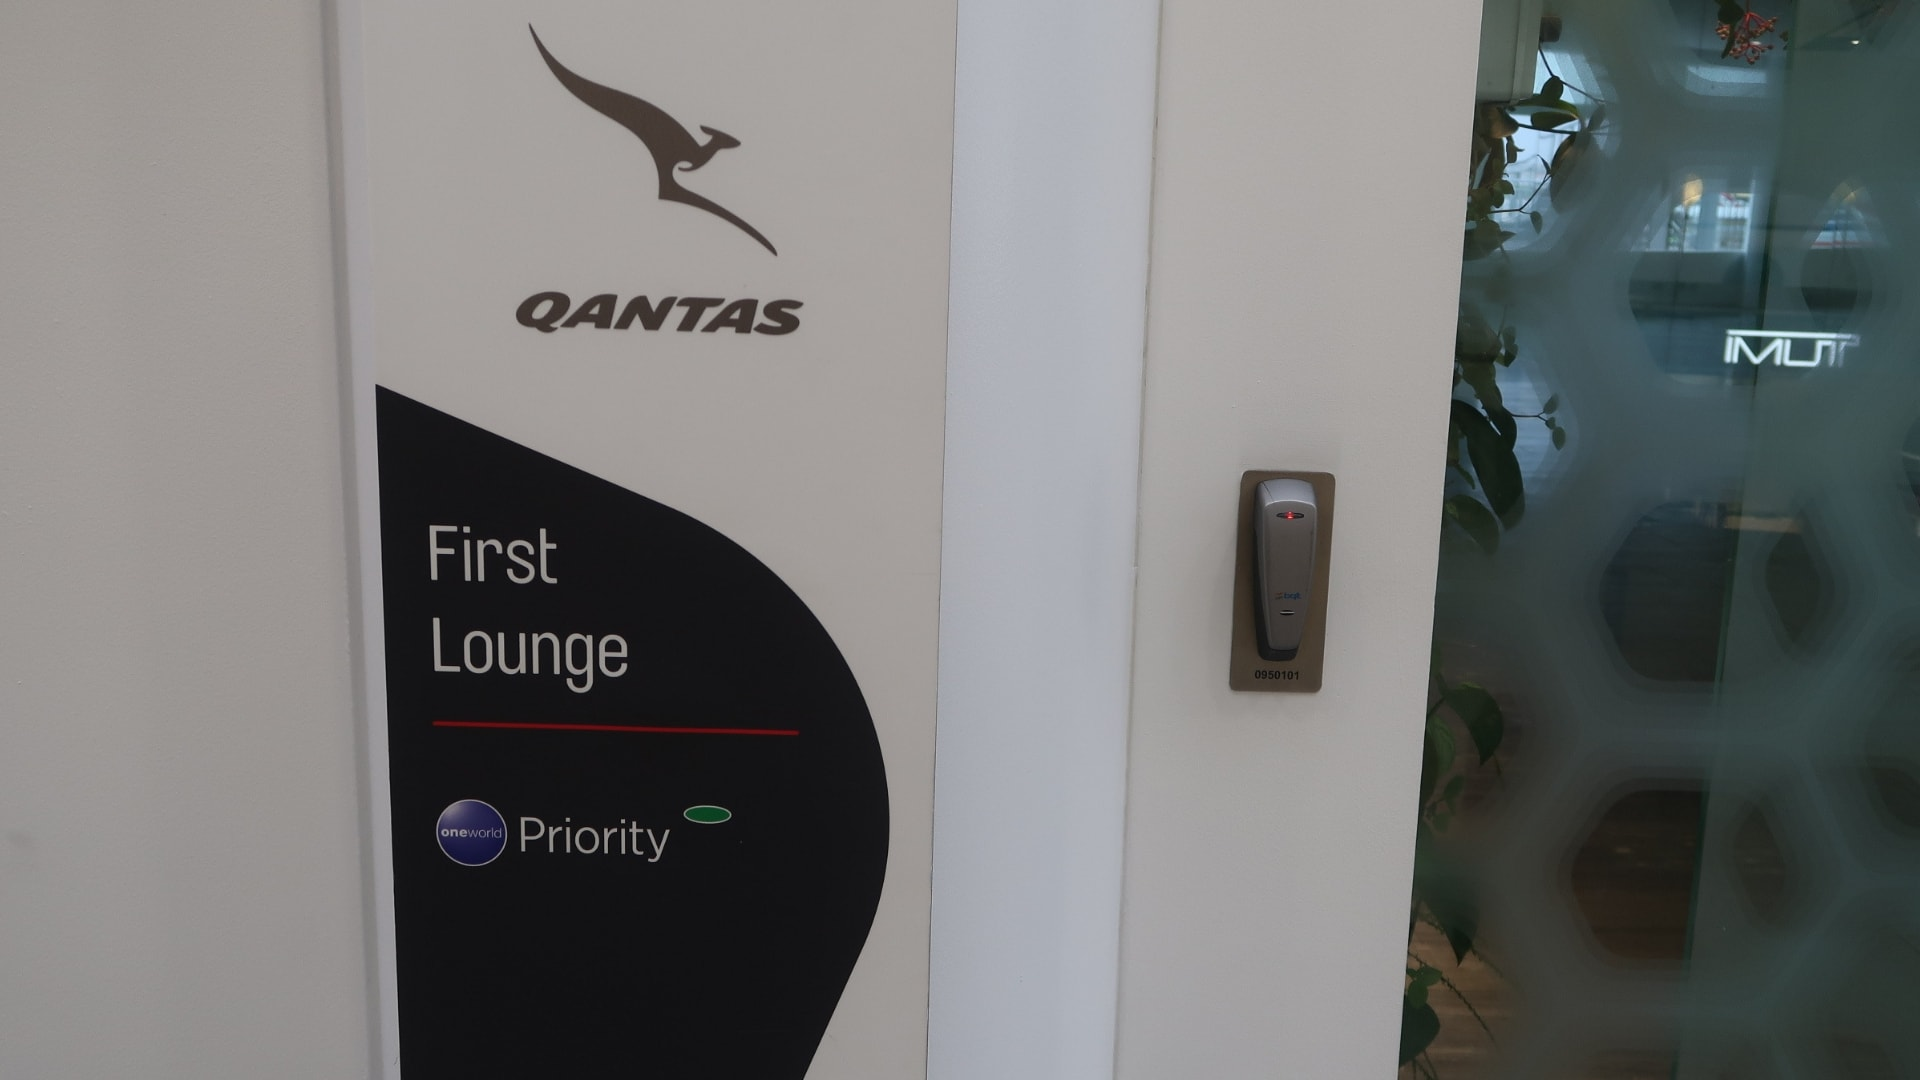 qantas first class lounge sydney entry sign